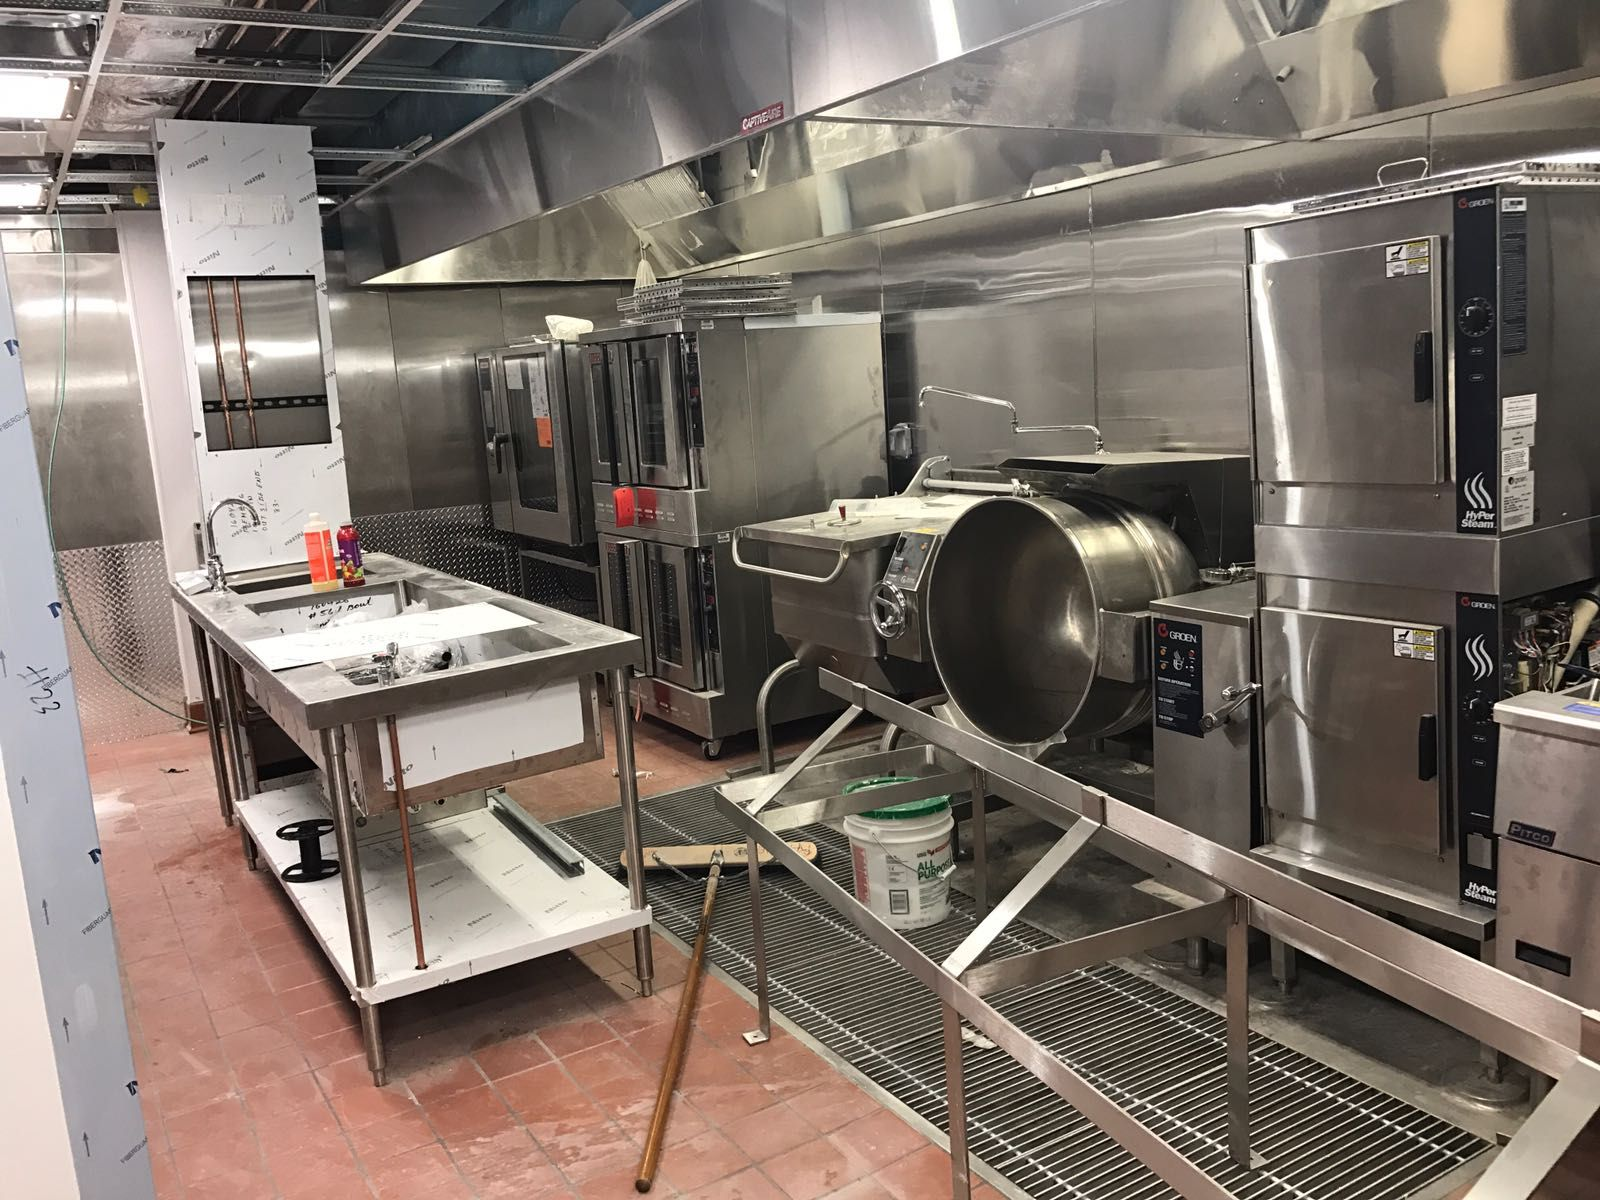 Commercial Kitchen With A Pitco Fryer Groen Steamer Groen